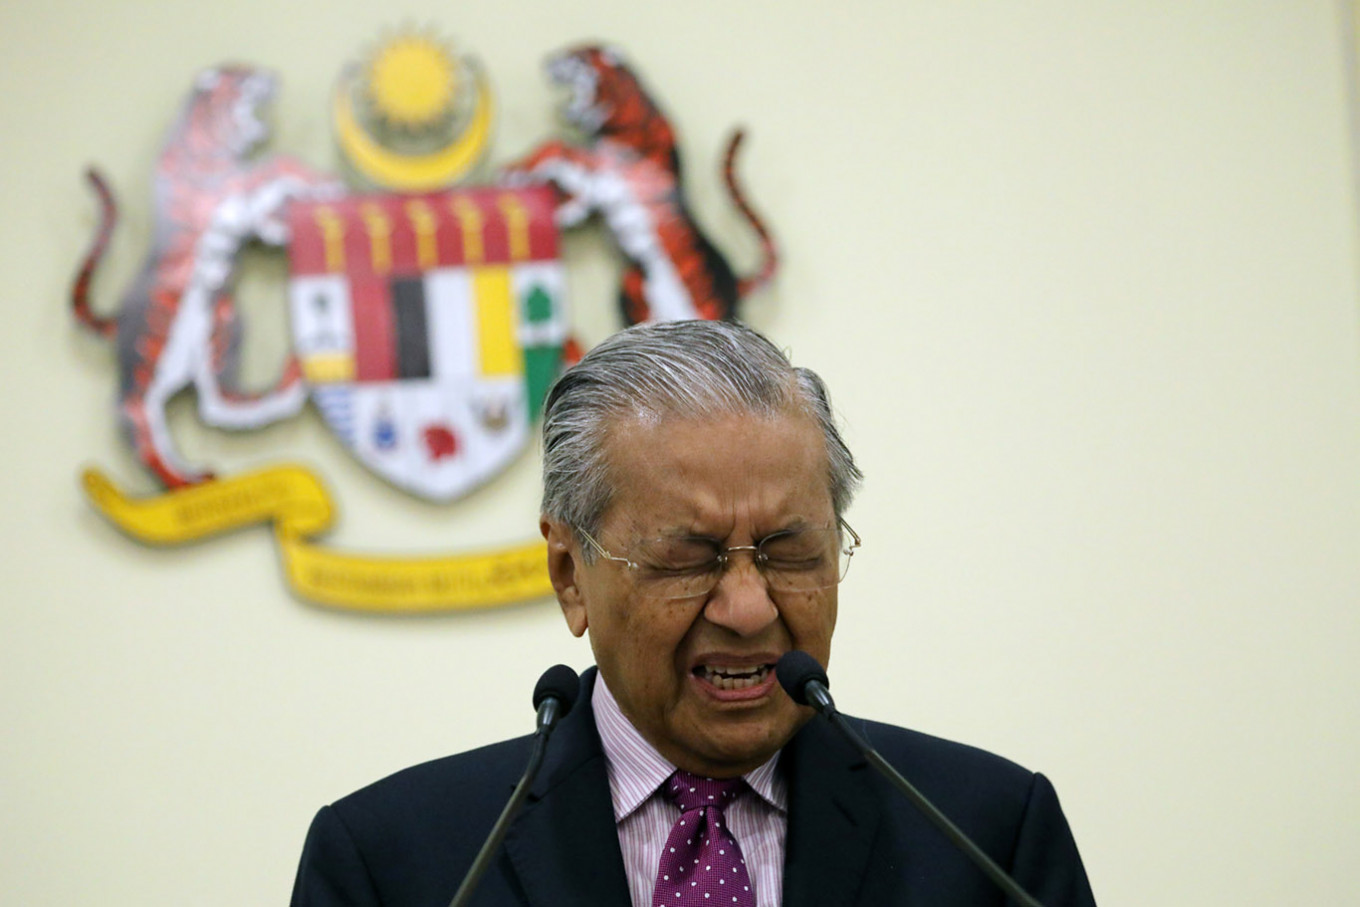 How a $7 billion dispute helped bring down Malaysia's Mahathir